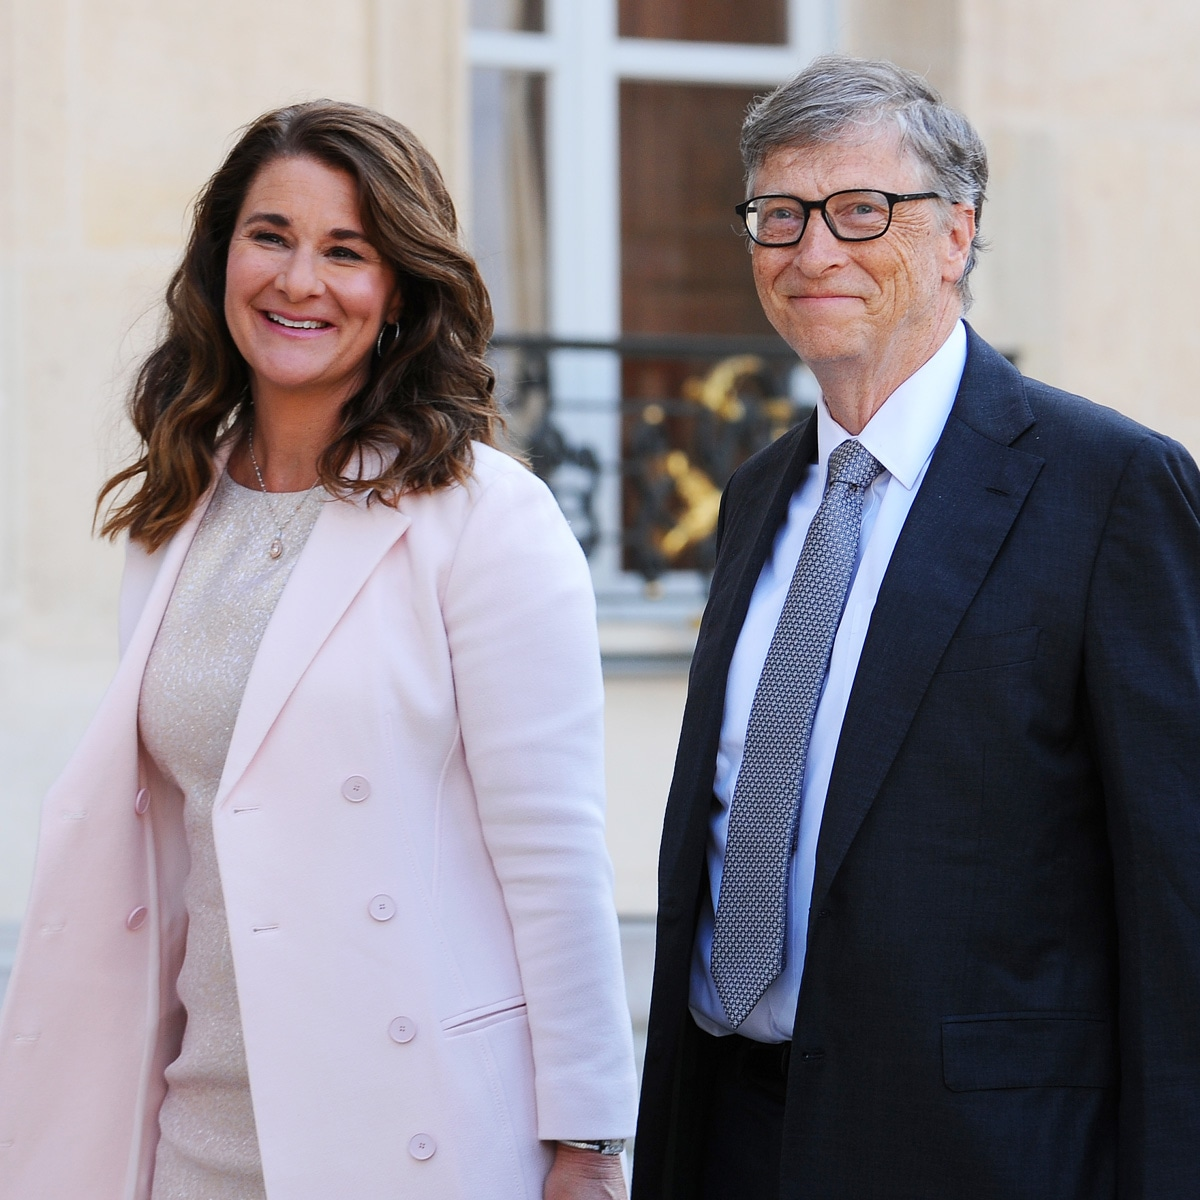 Bill Gates and Melinda Gates Break Up After 27 Years of Marriage - E! Online